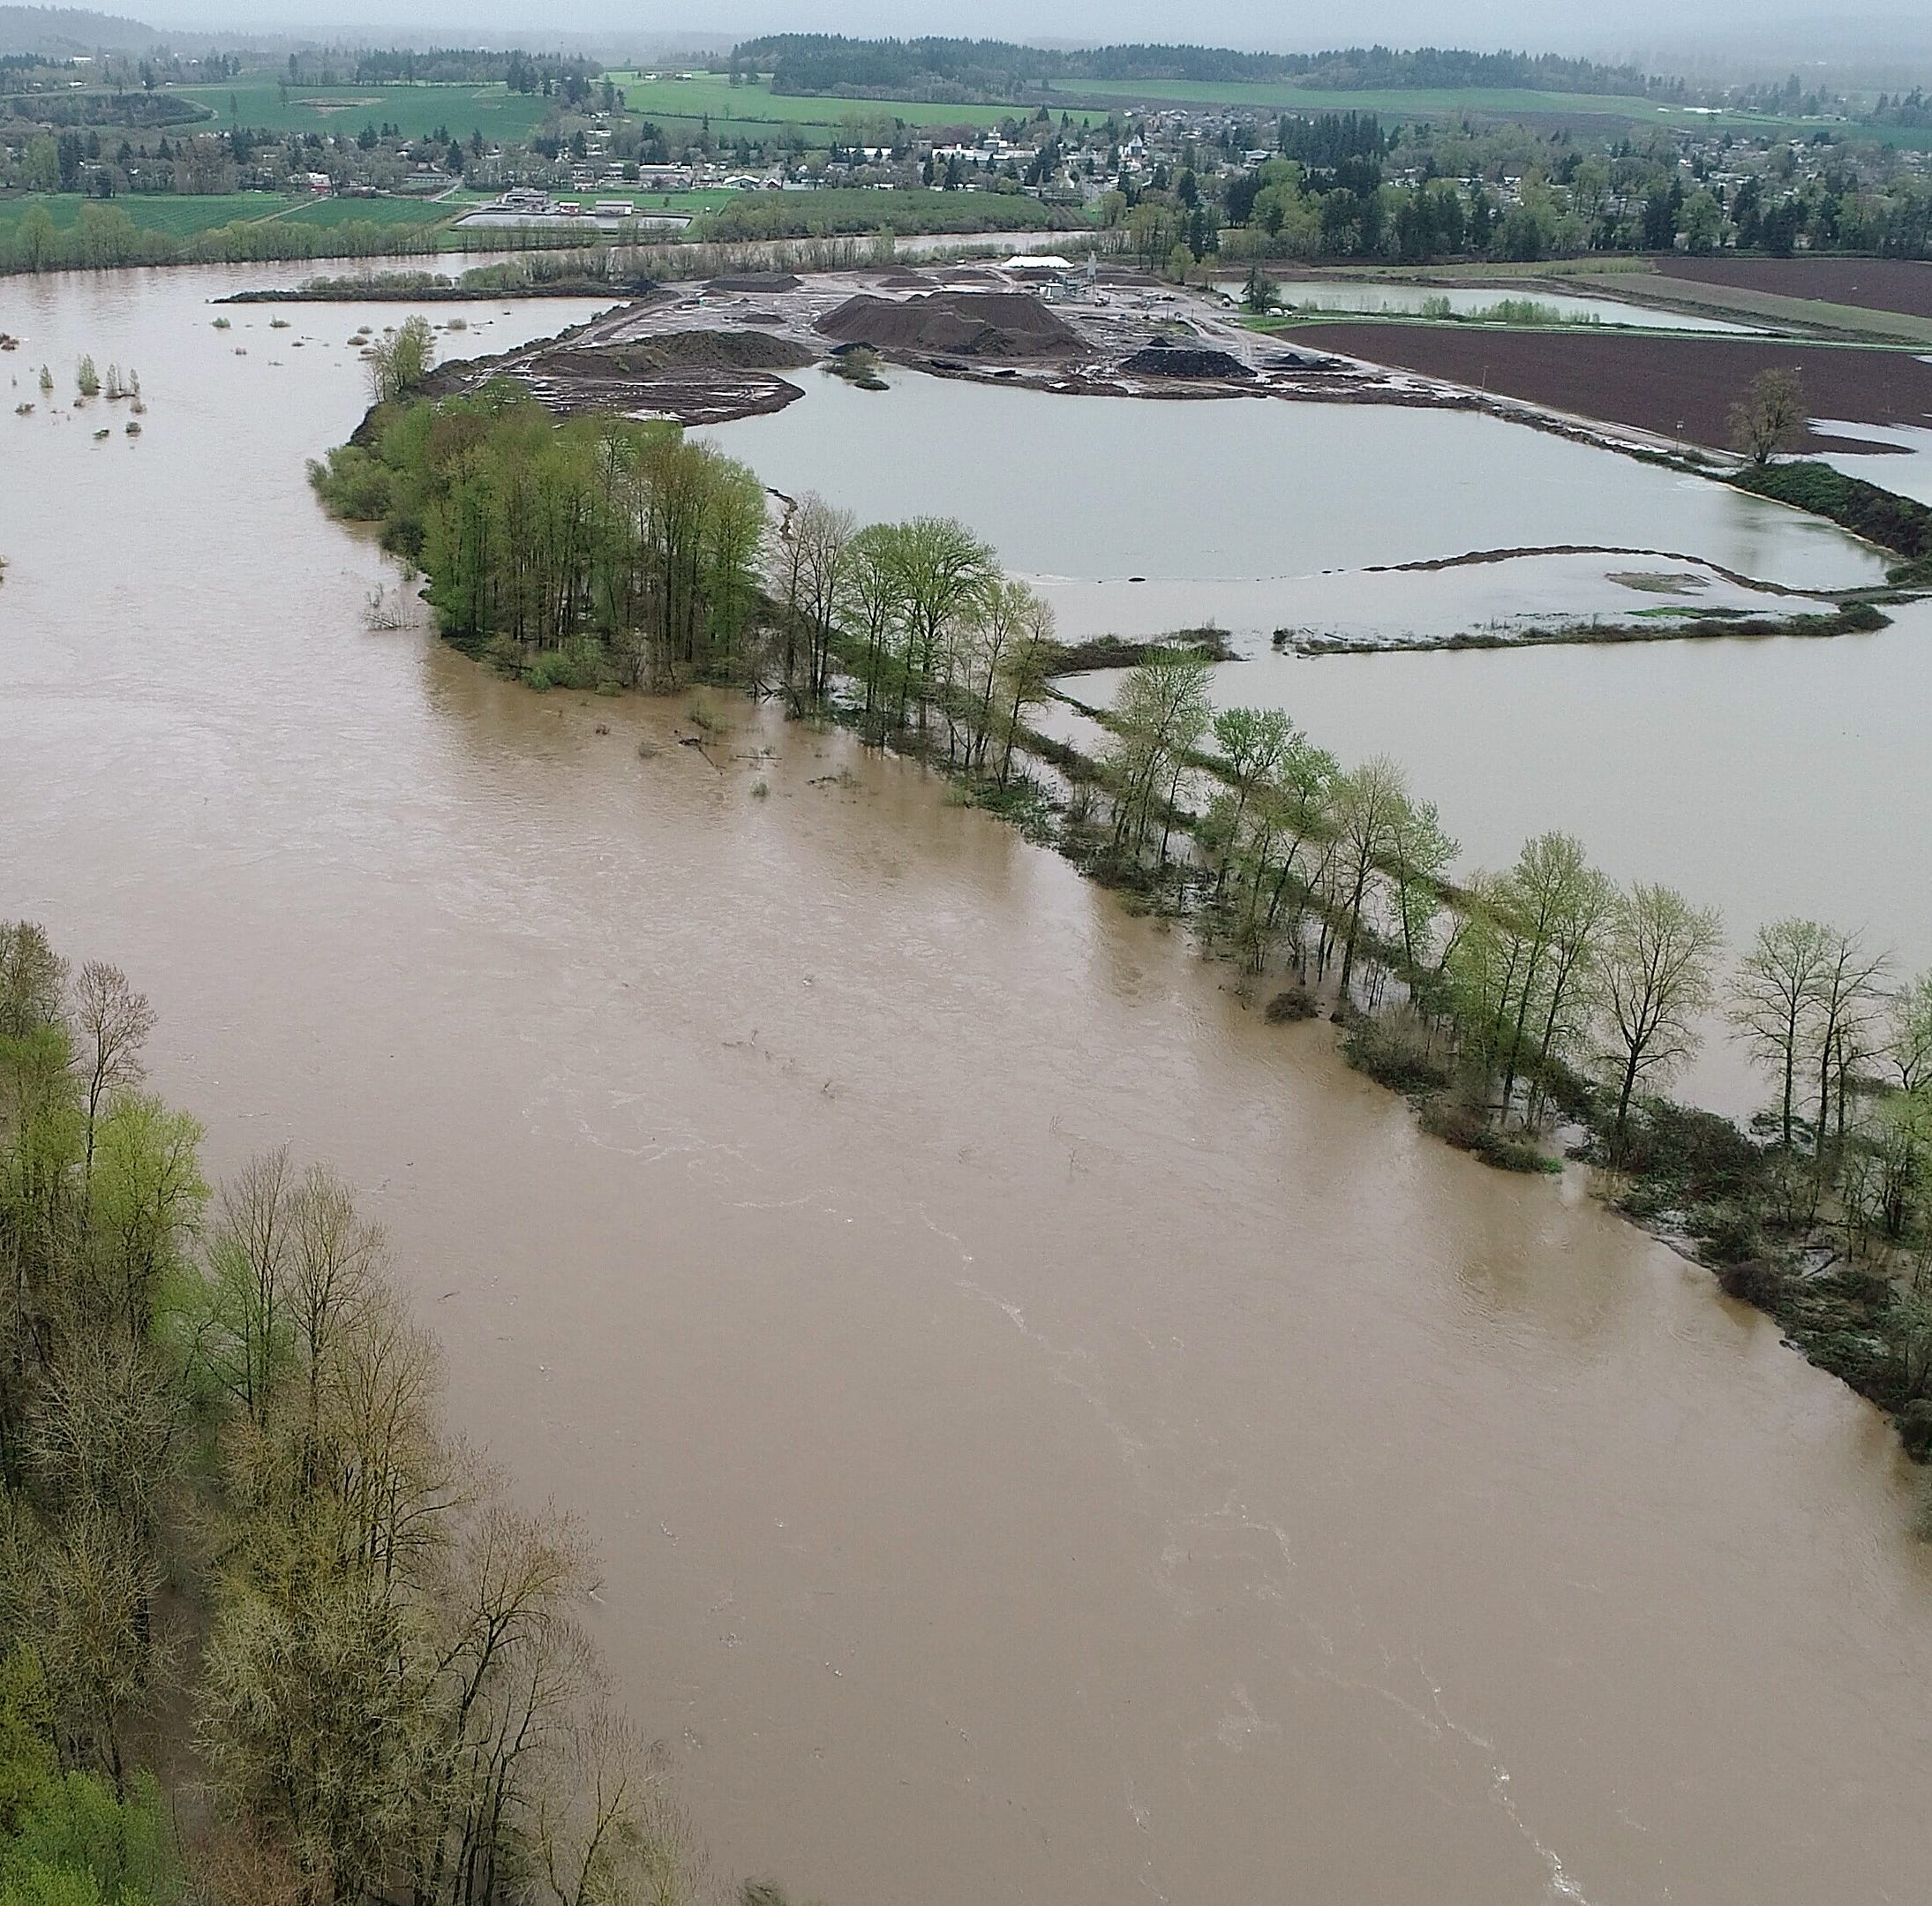 Salem, Willamette Valley high water prompts road closures